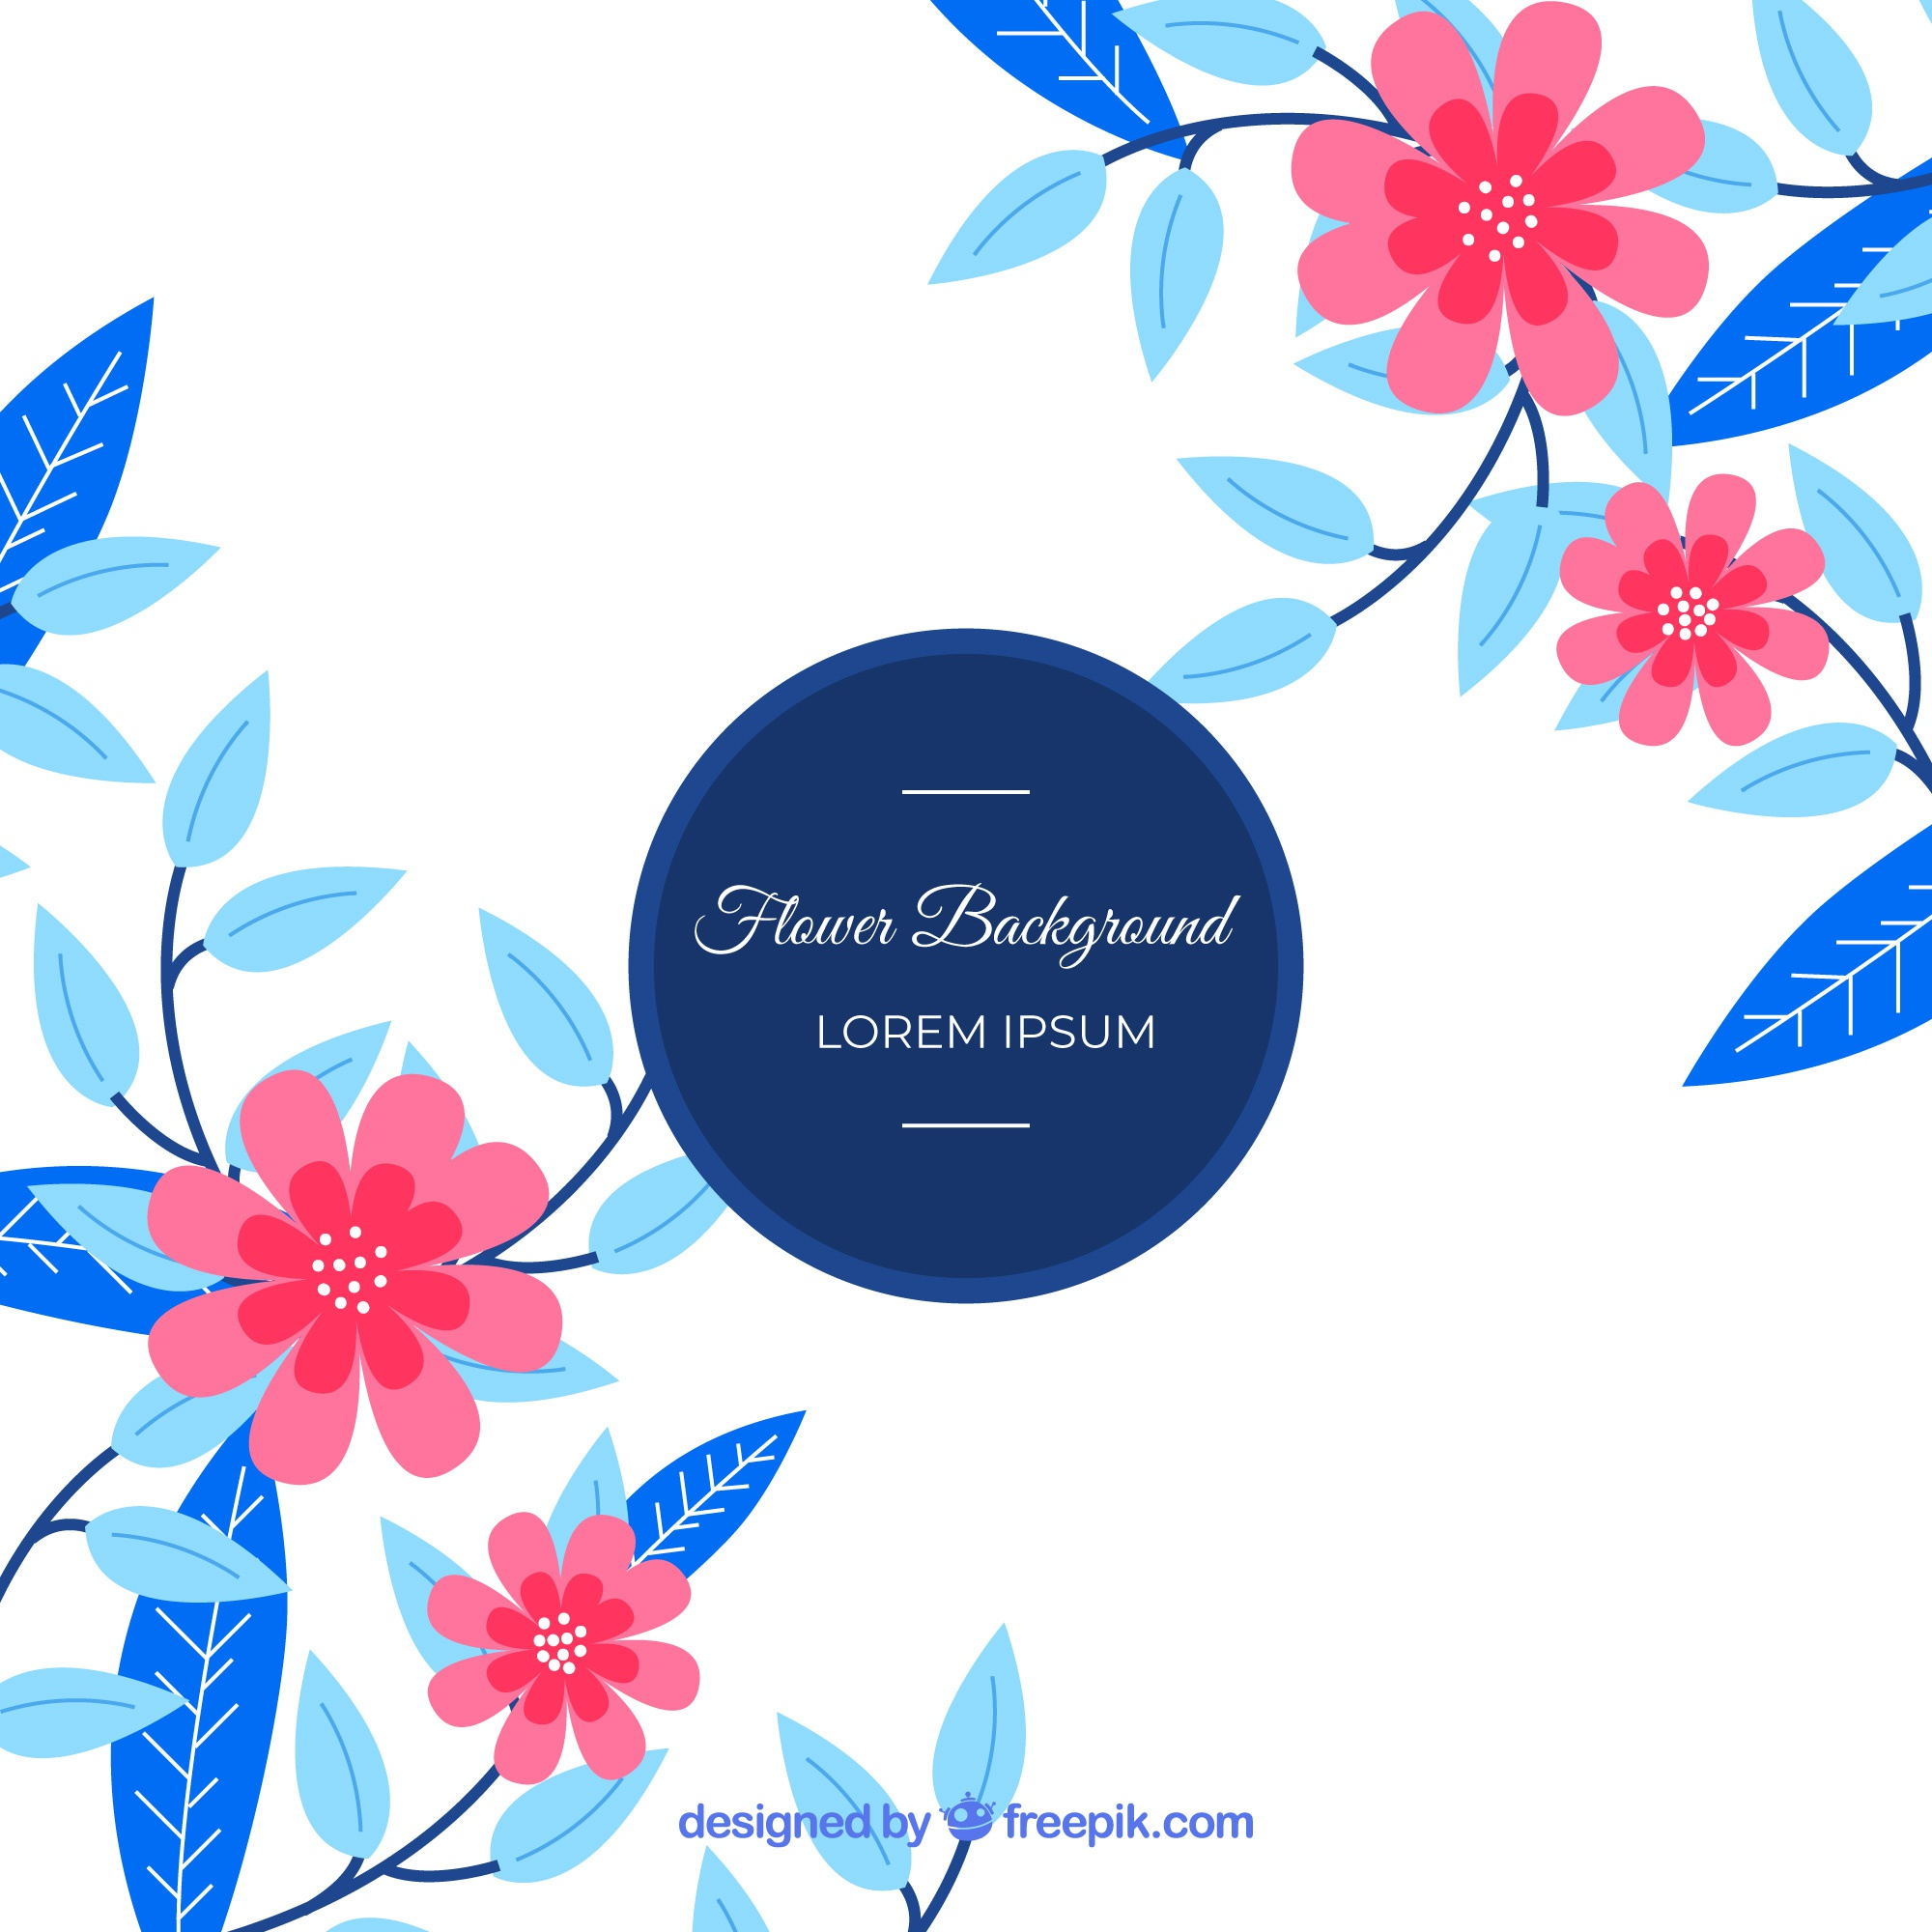 Floral background with flat design